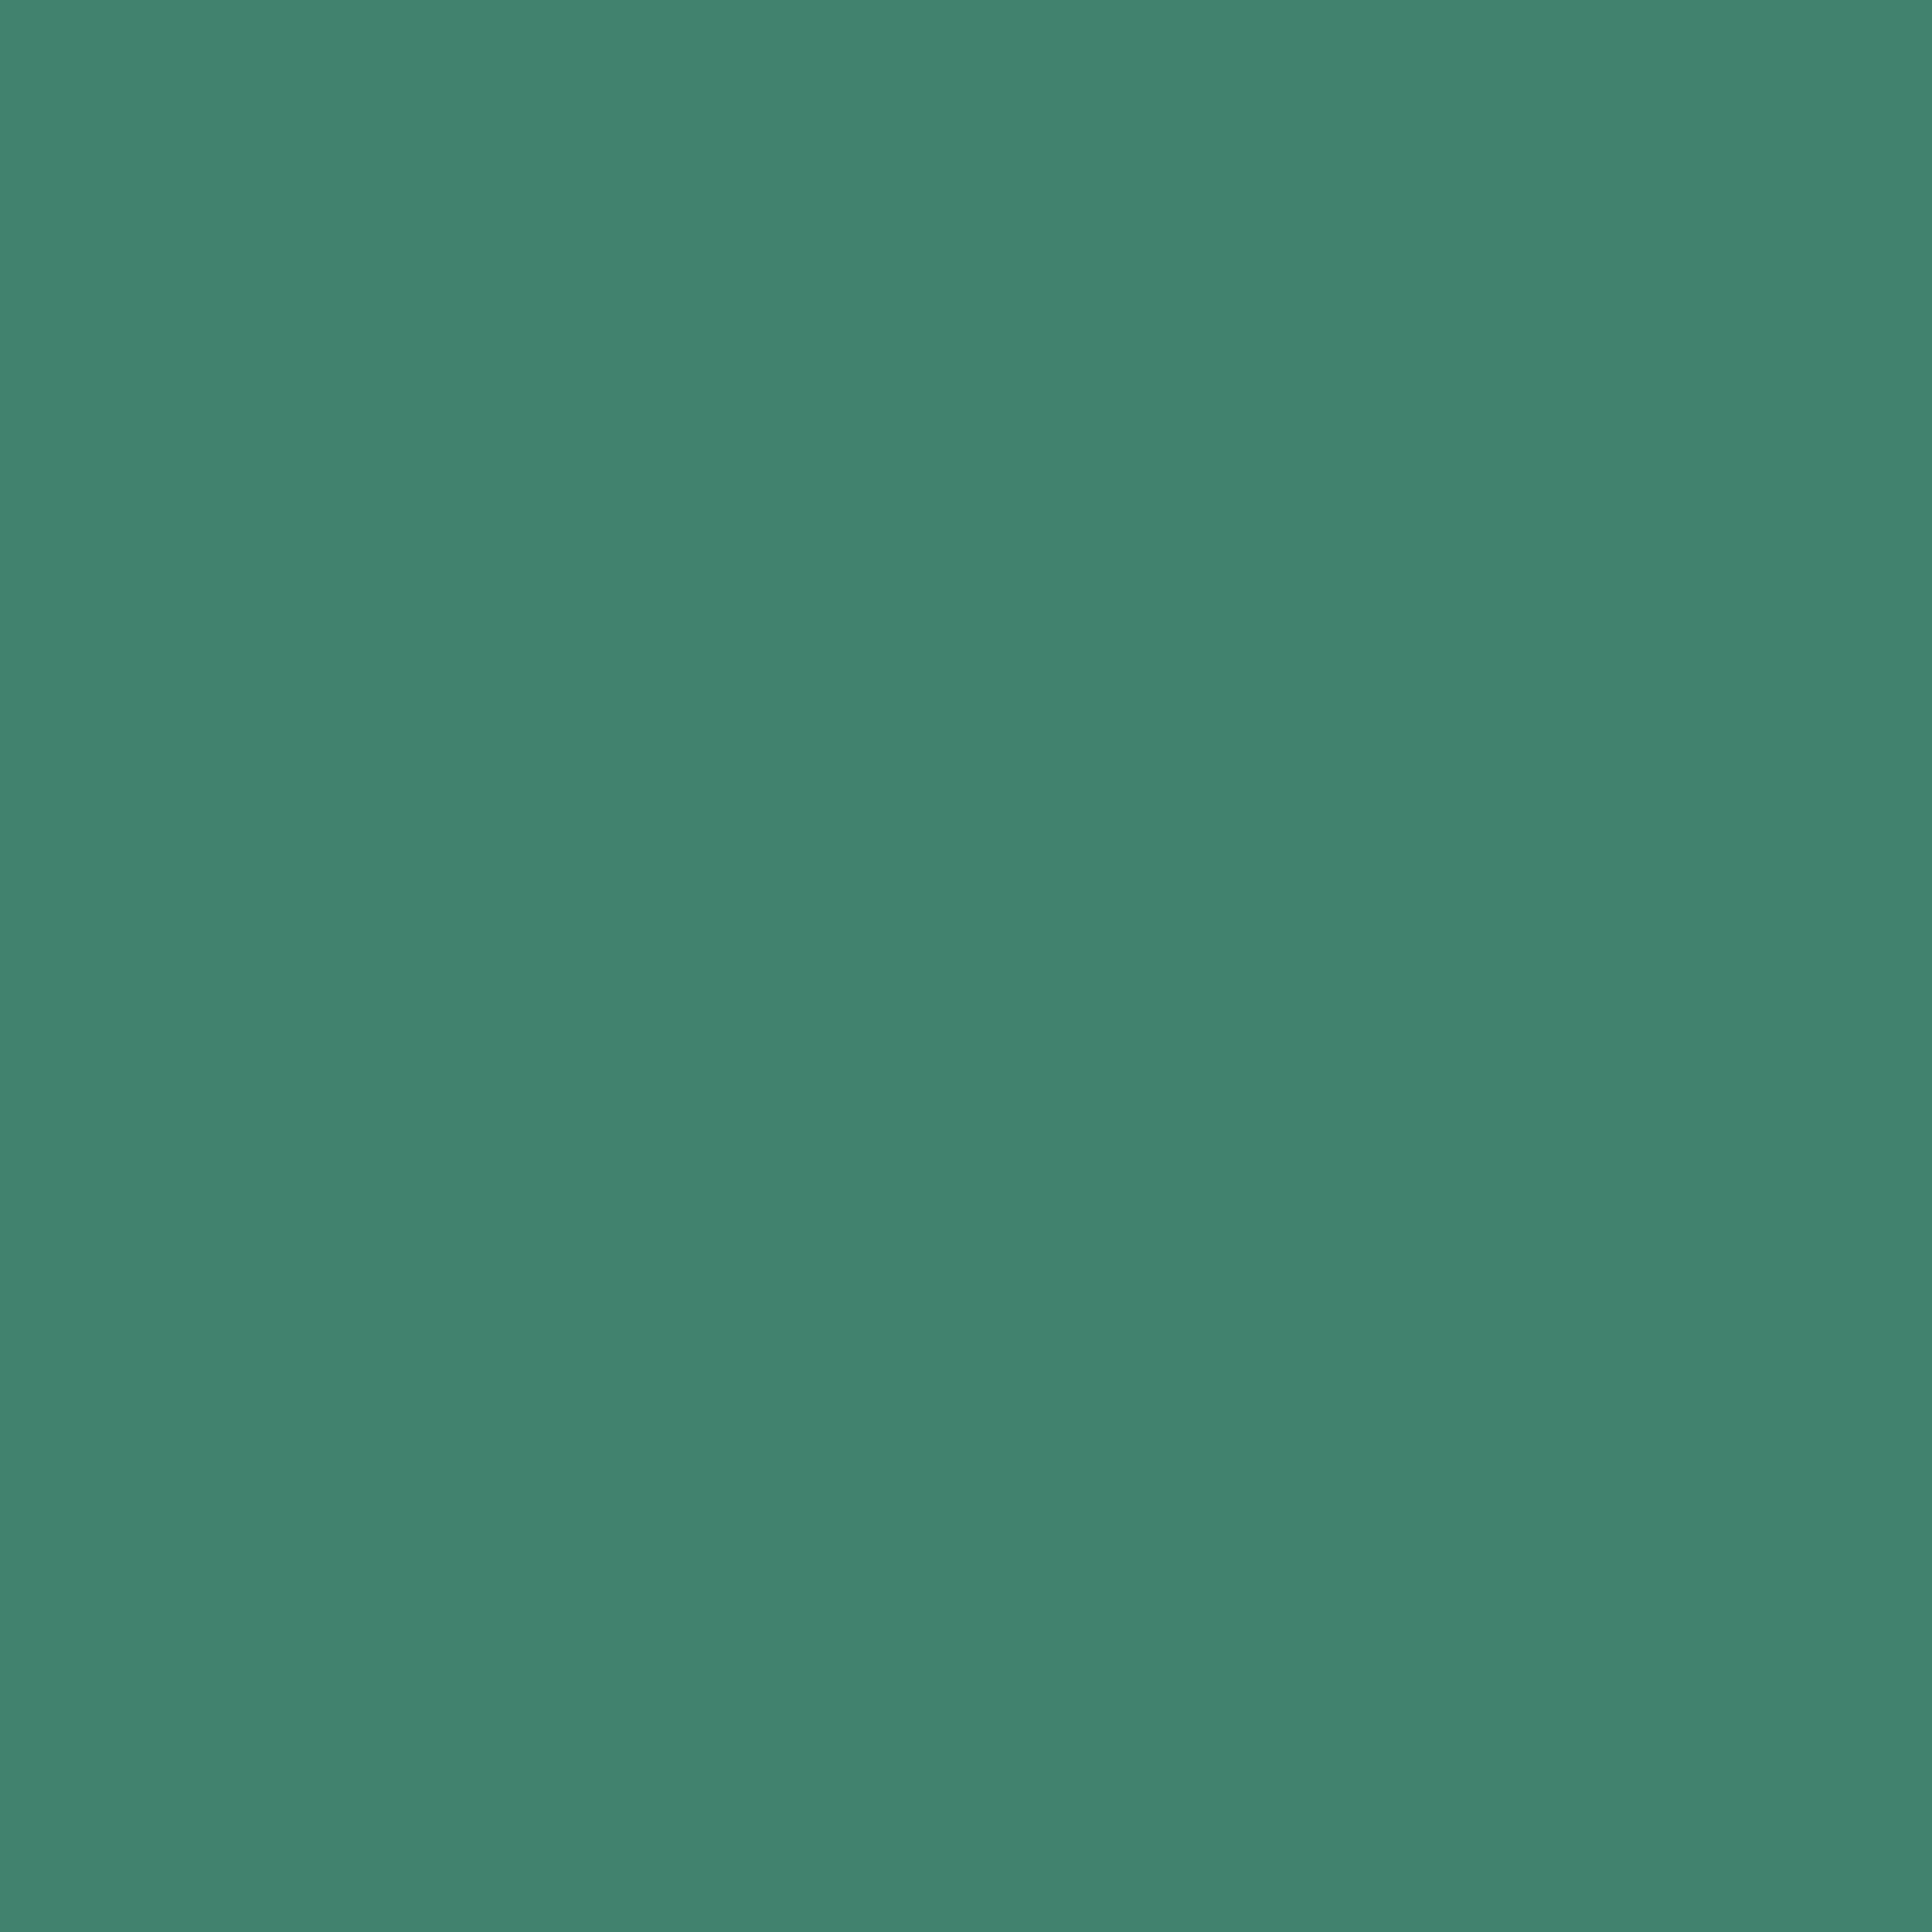 3600x3600 Viridian Solid Color Background